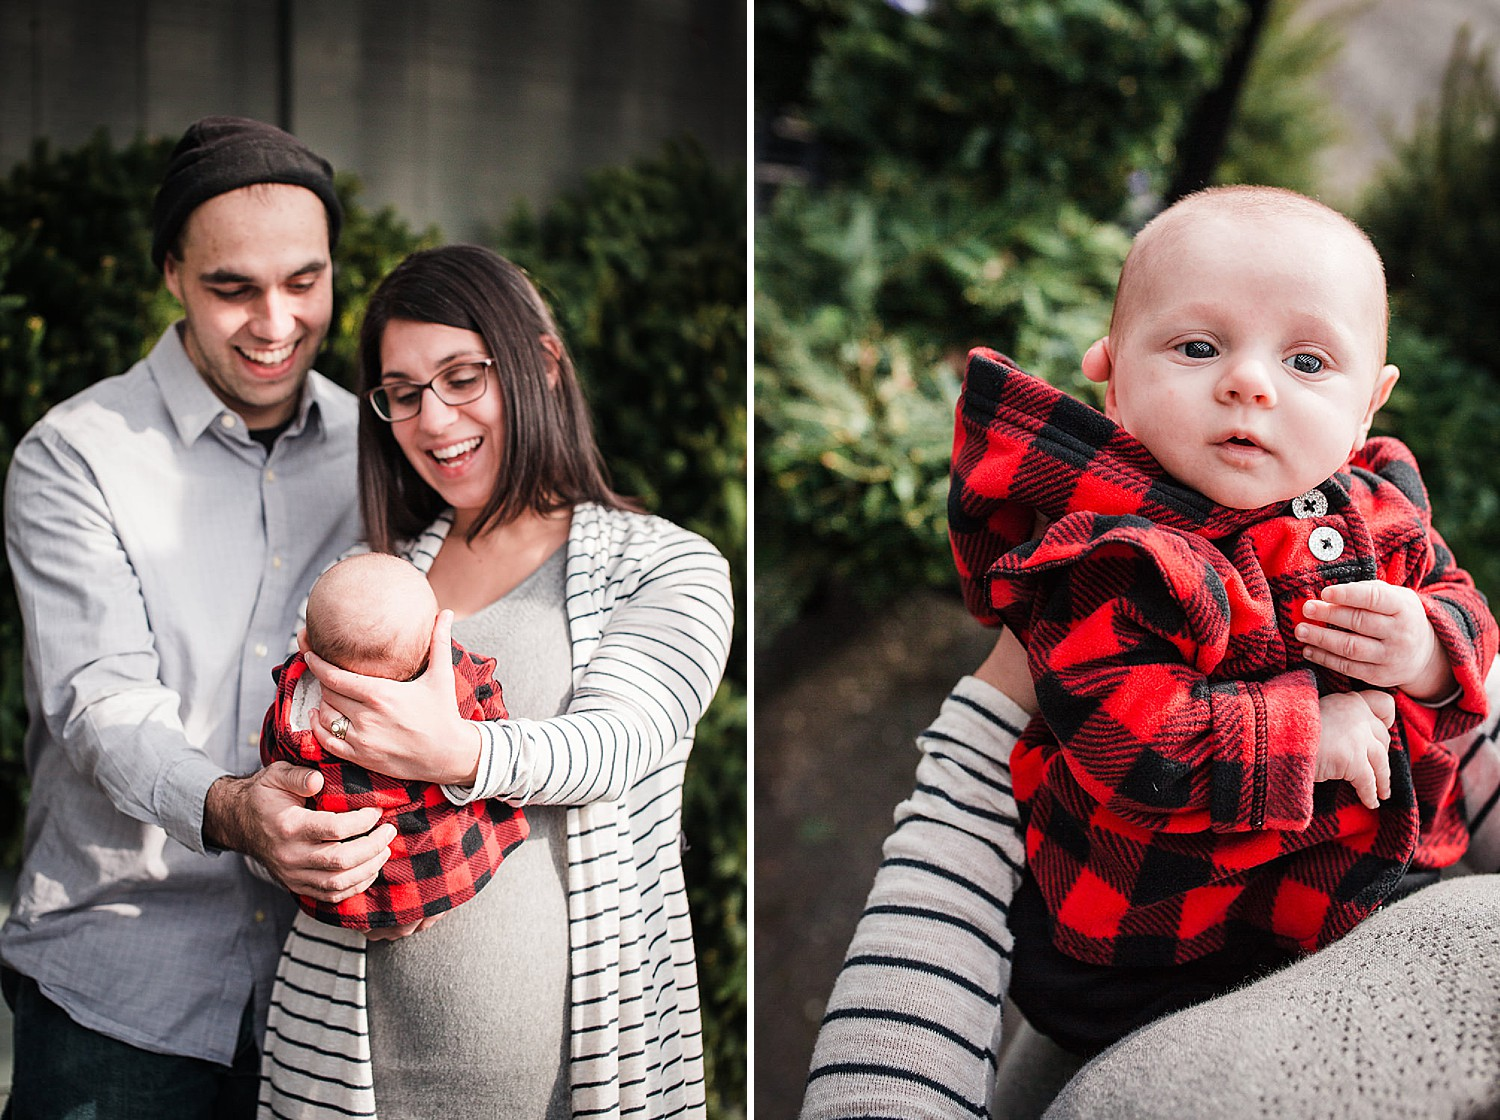 Photo of a young couple holding their newborn baby girl in front of some greenery at Christmas time.